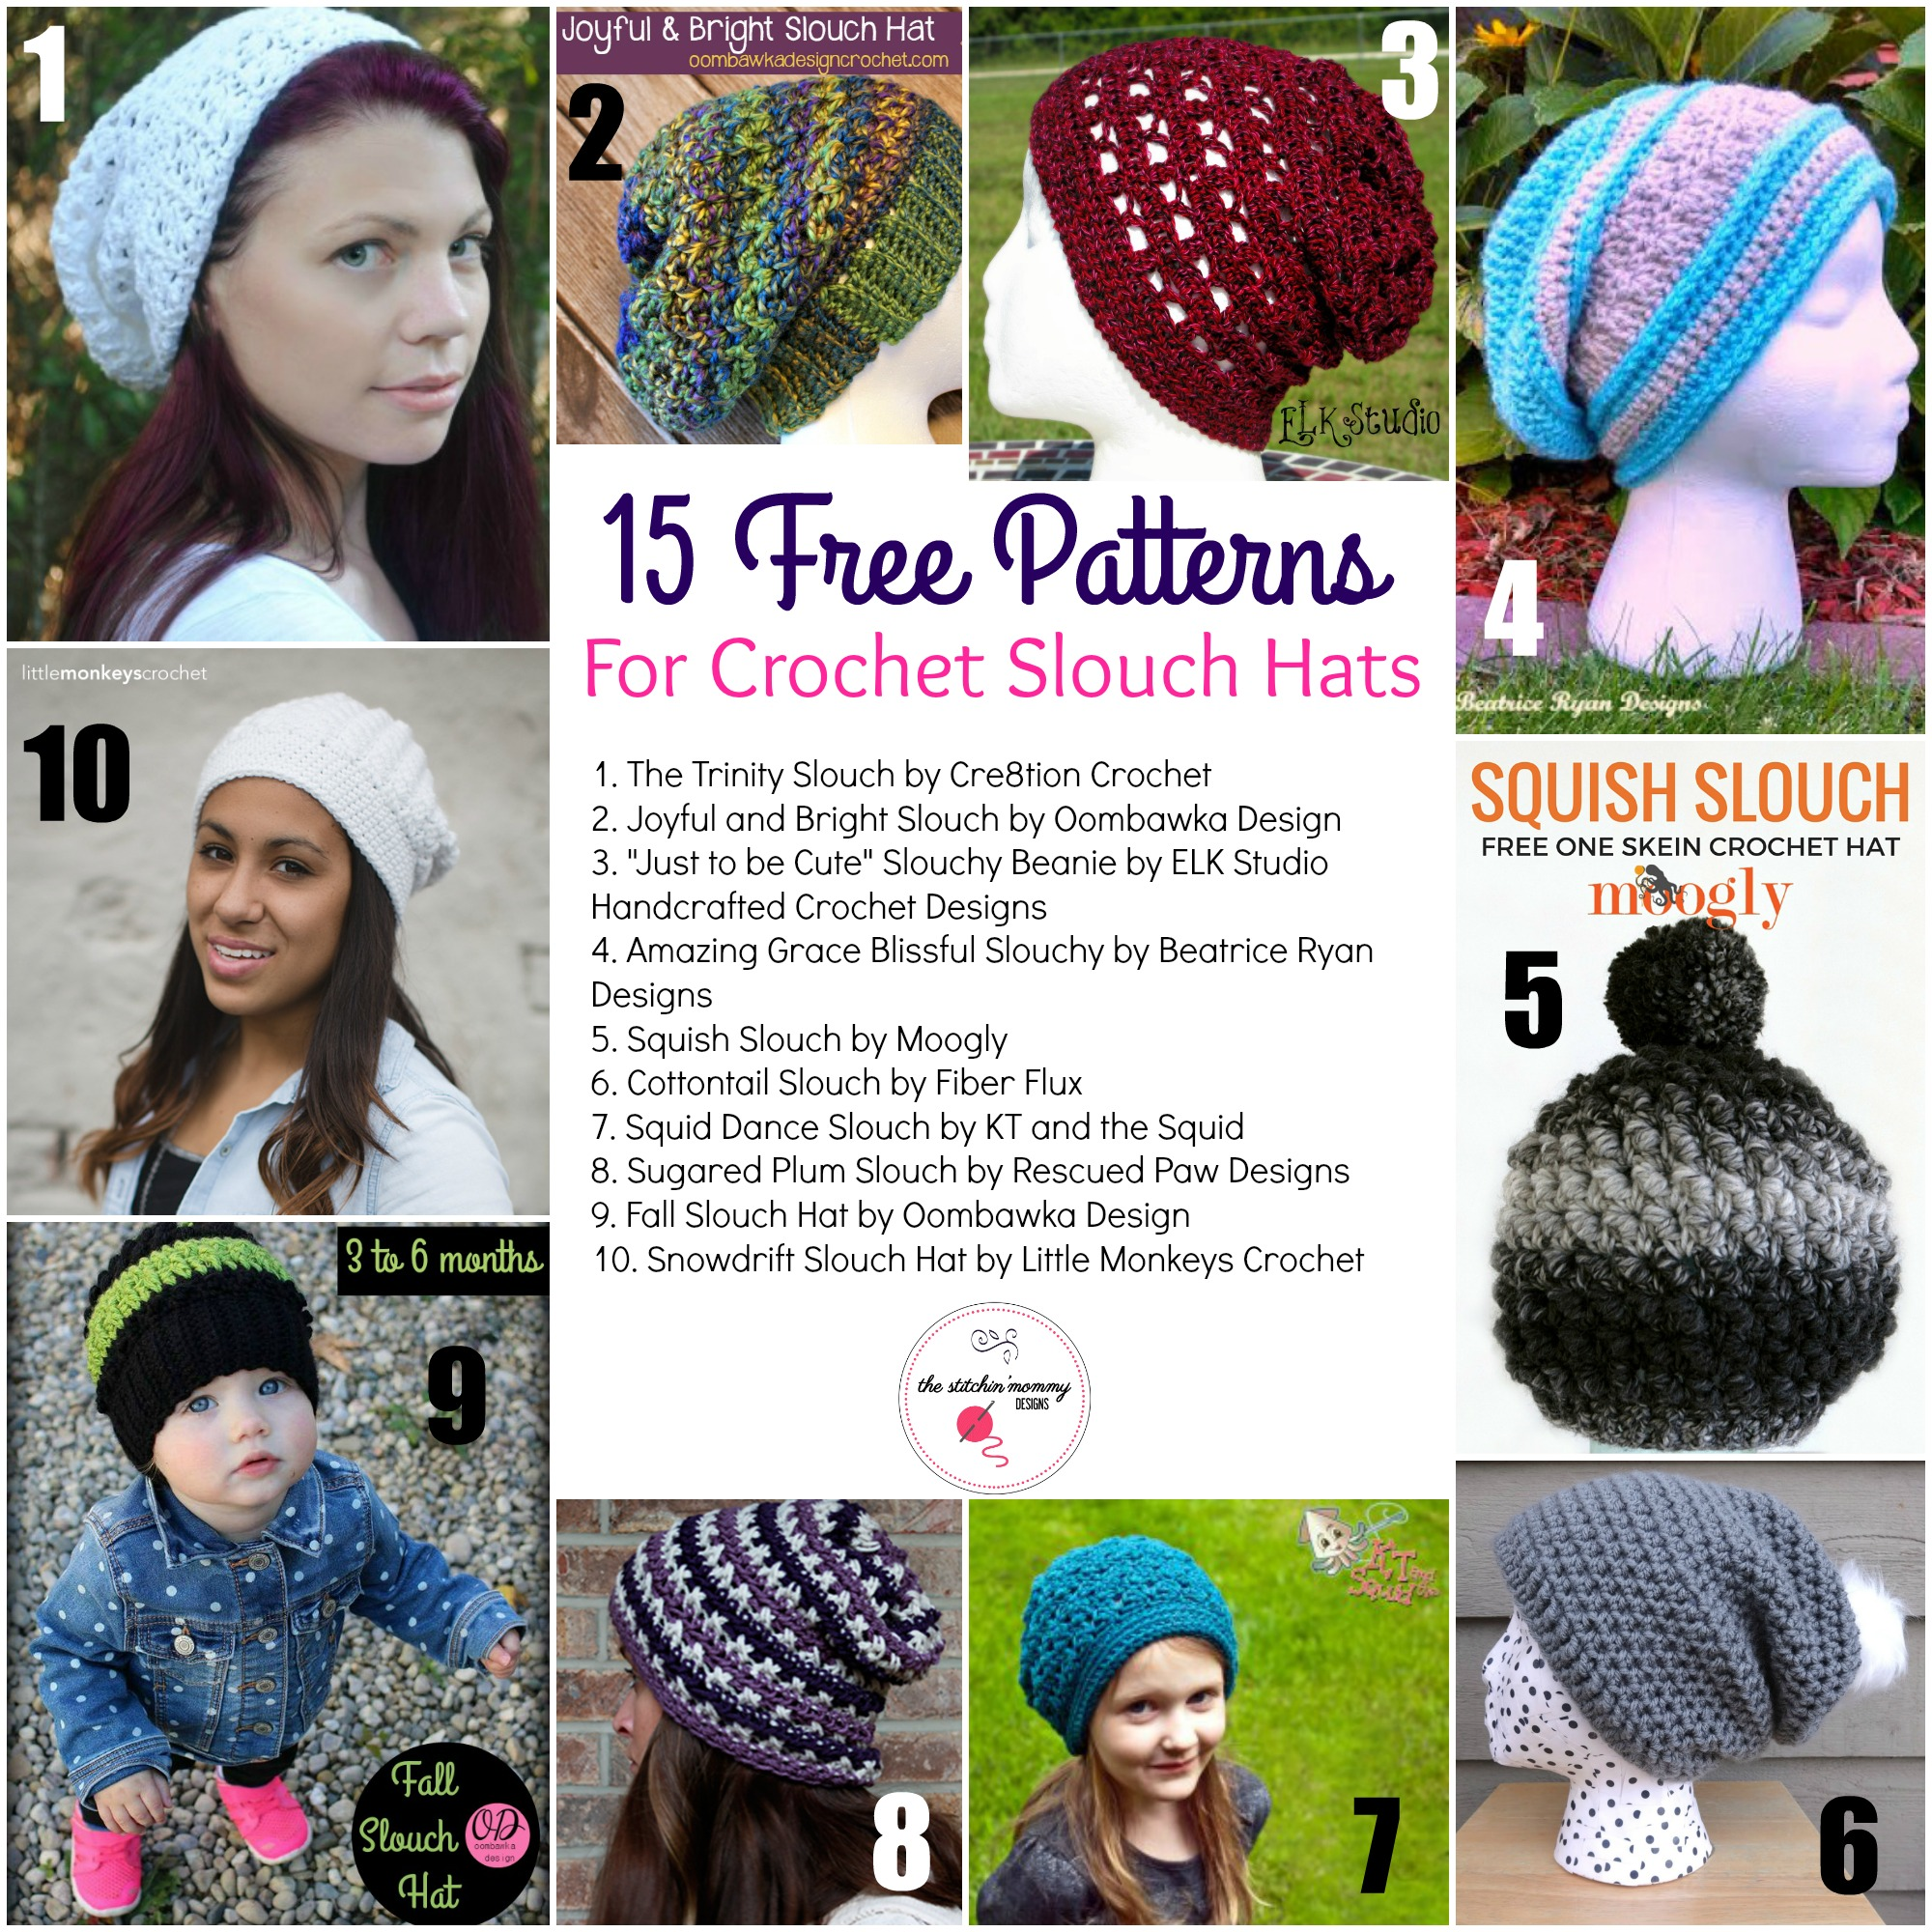 15 free patterns for crochet slouch hats the stitchin mommy bankloansurffo Image collections